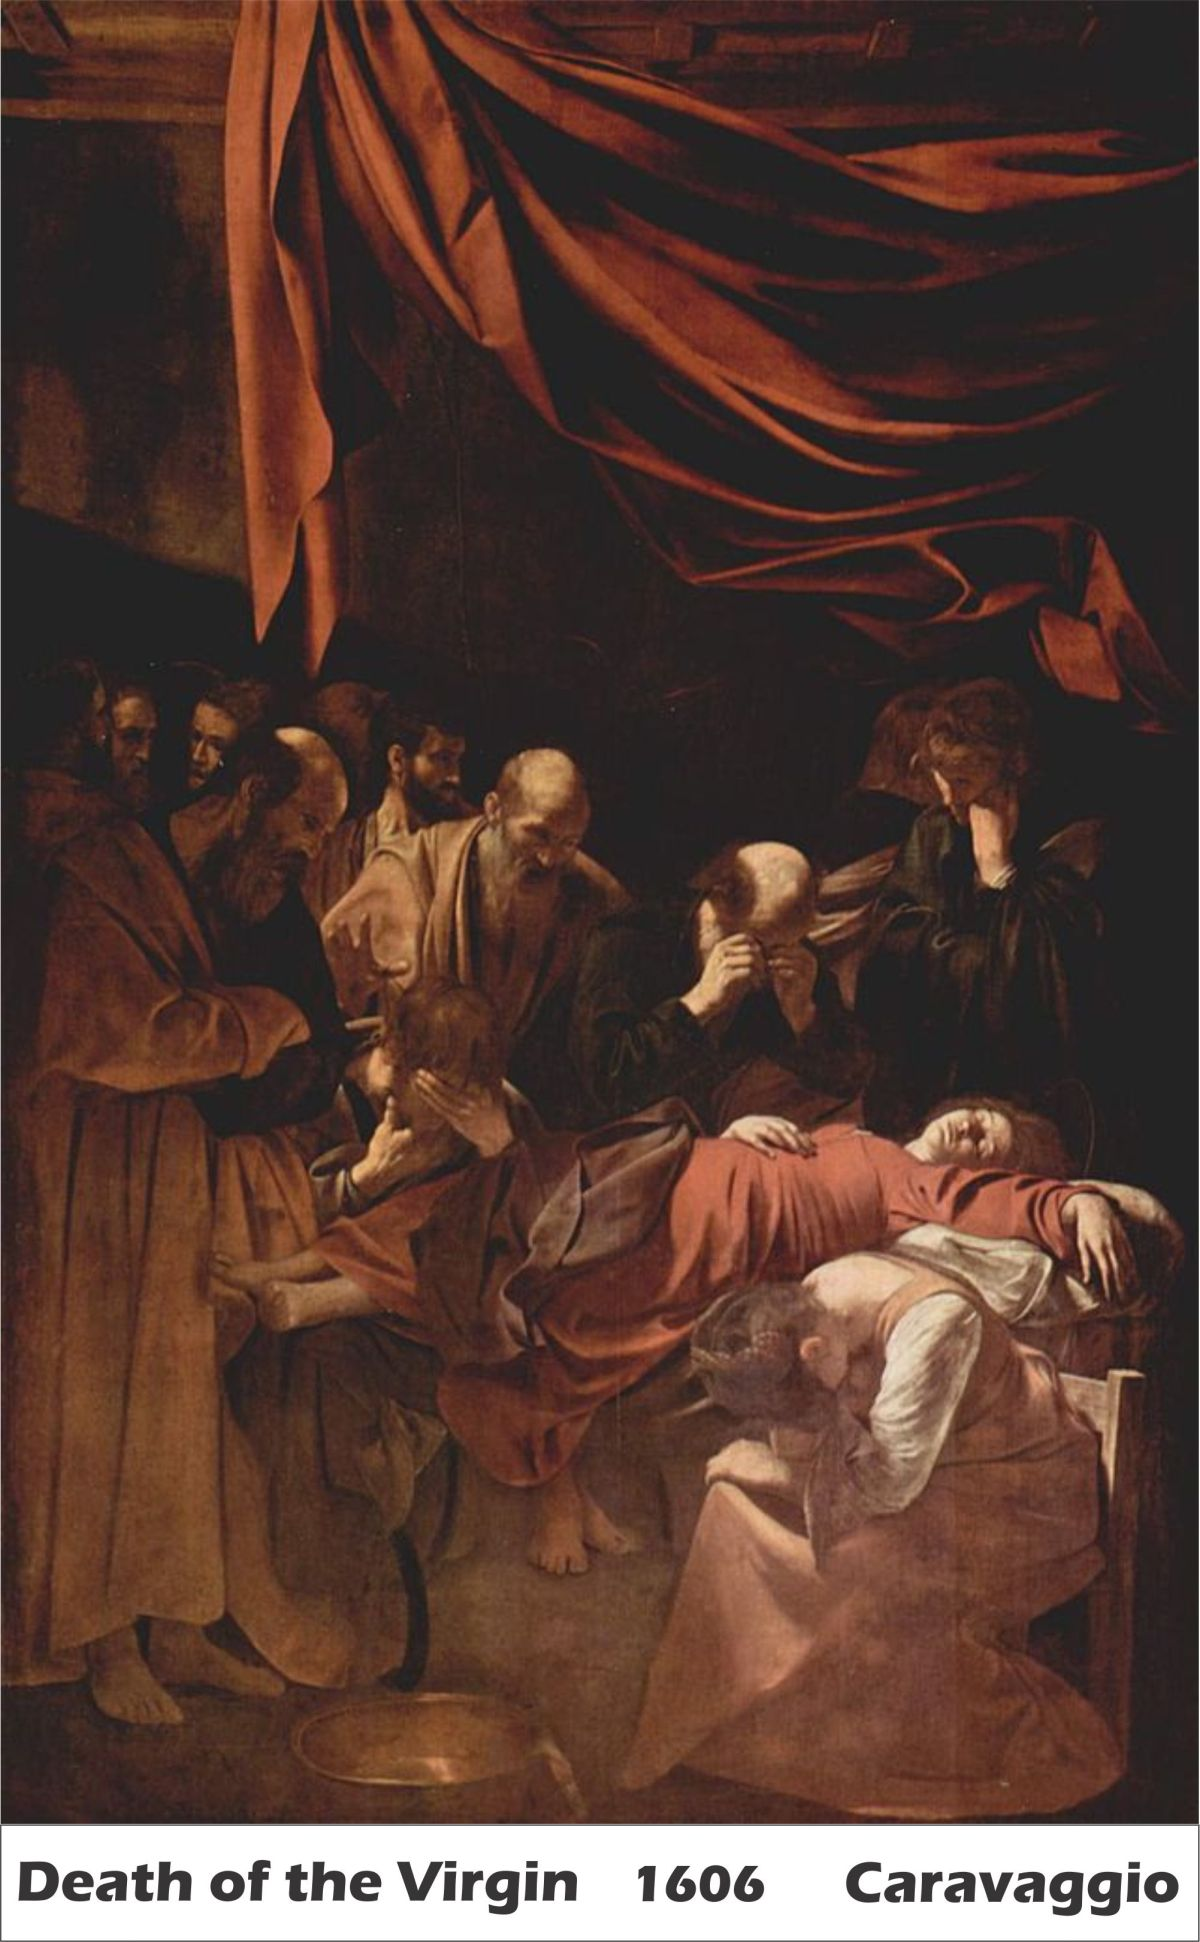 Death of the Virgin by Caravaggio